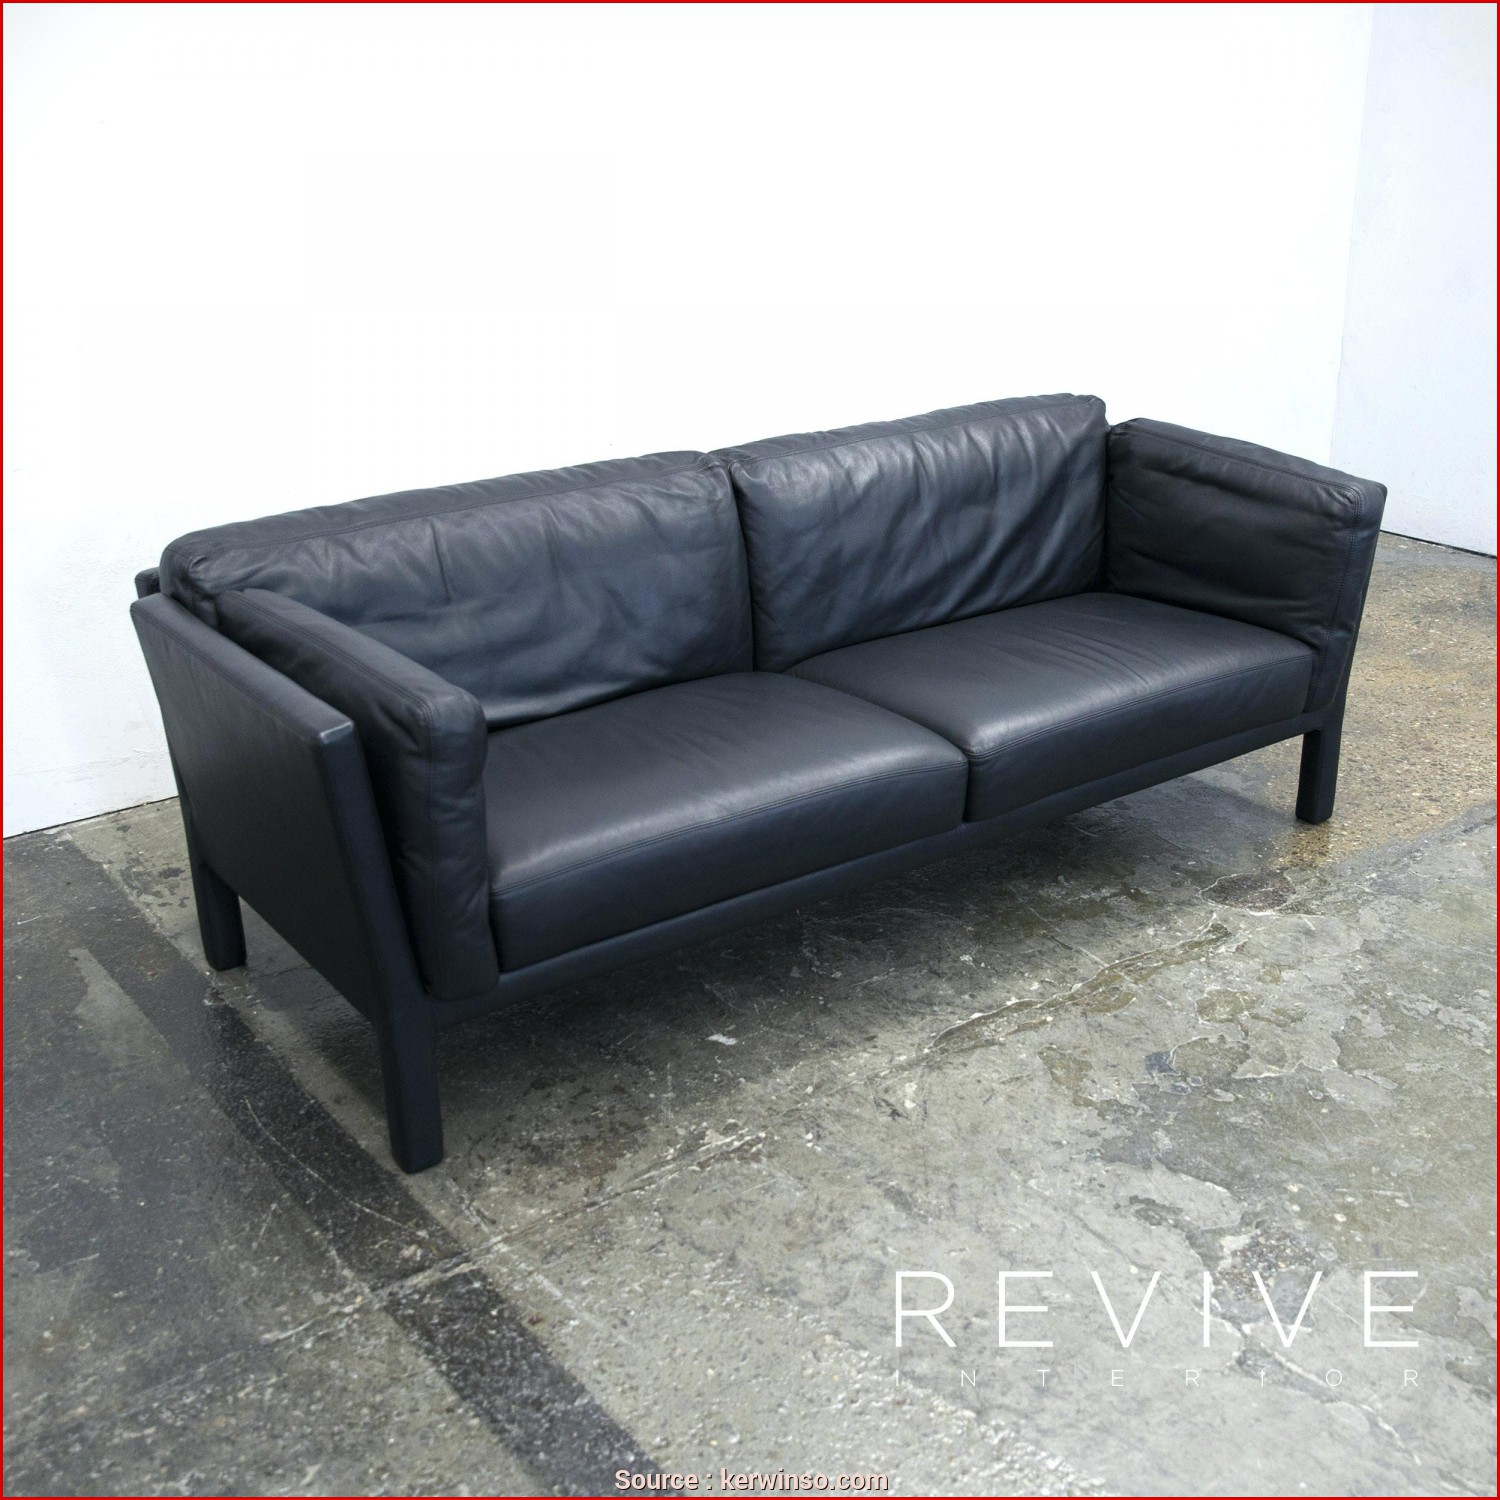 Ikea Backabro Sofa Review, Esclusivo Ikea Couch Grau Ikea Couch Grau 413577 Dreisitzer Sofa Cool Size Ikea Vilasund, Backabro Review